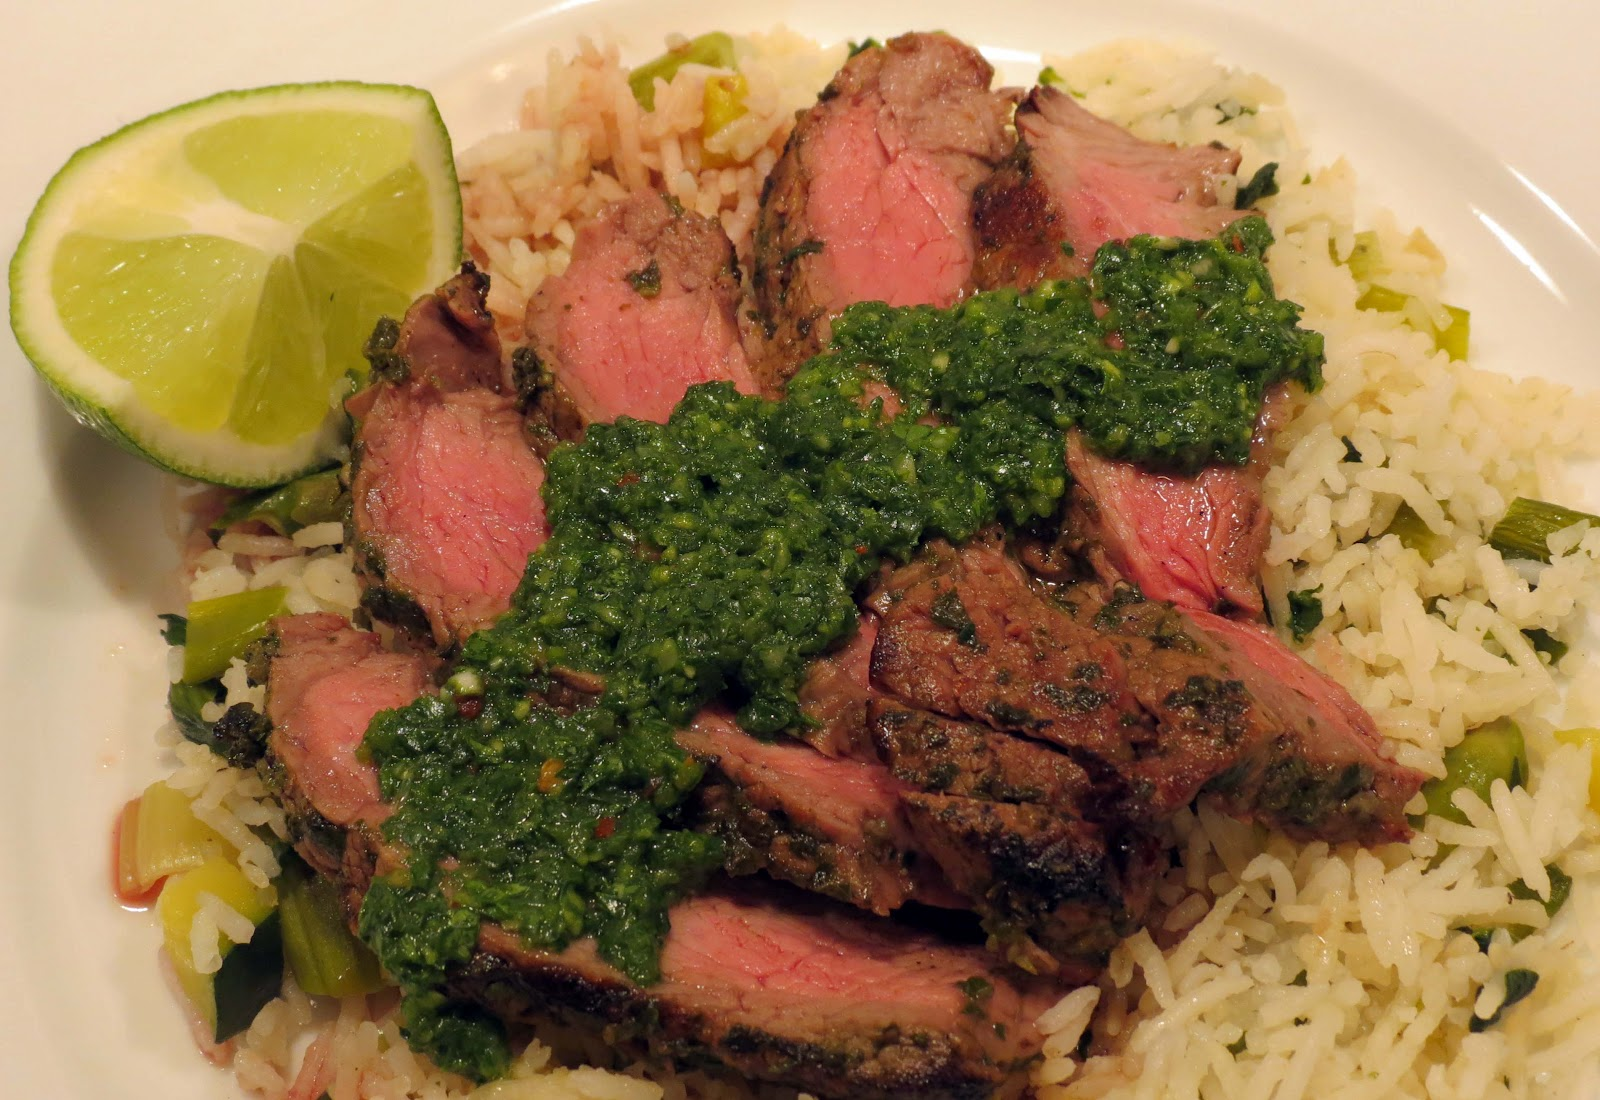 ... flank steak also the chimichurri sauce that grilled skirt steak with